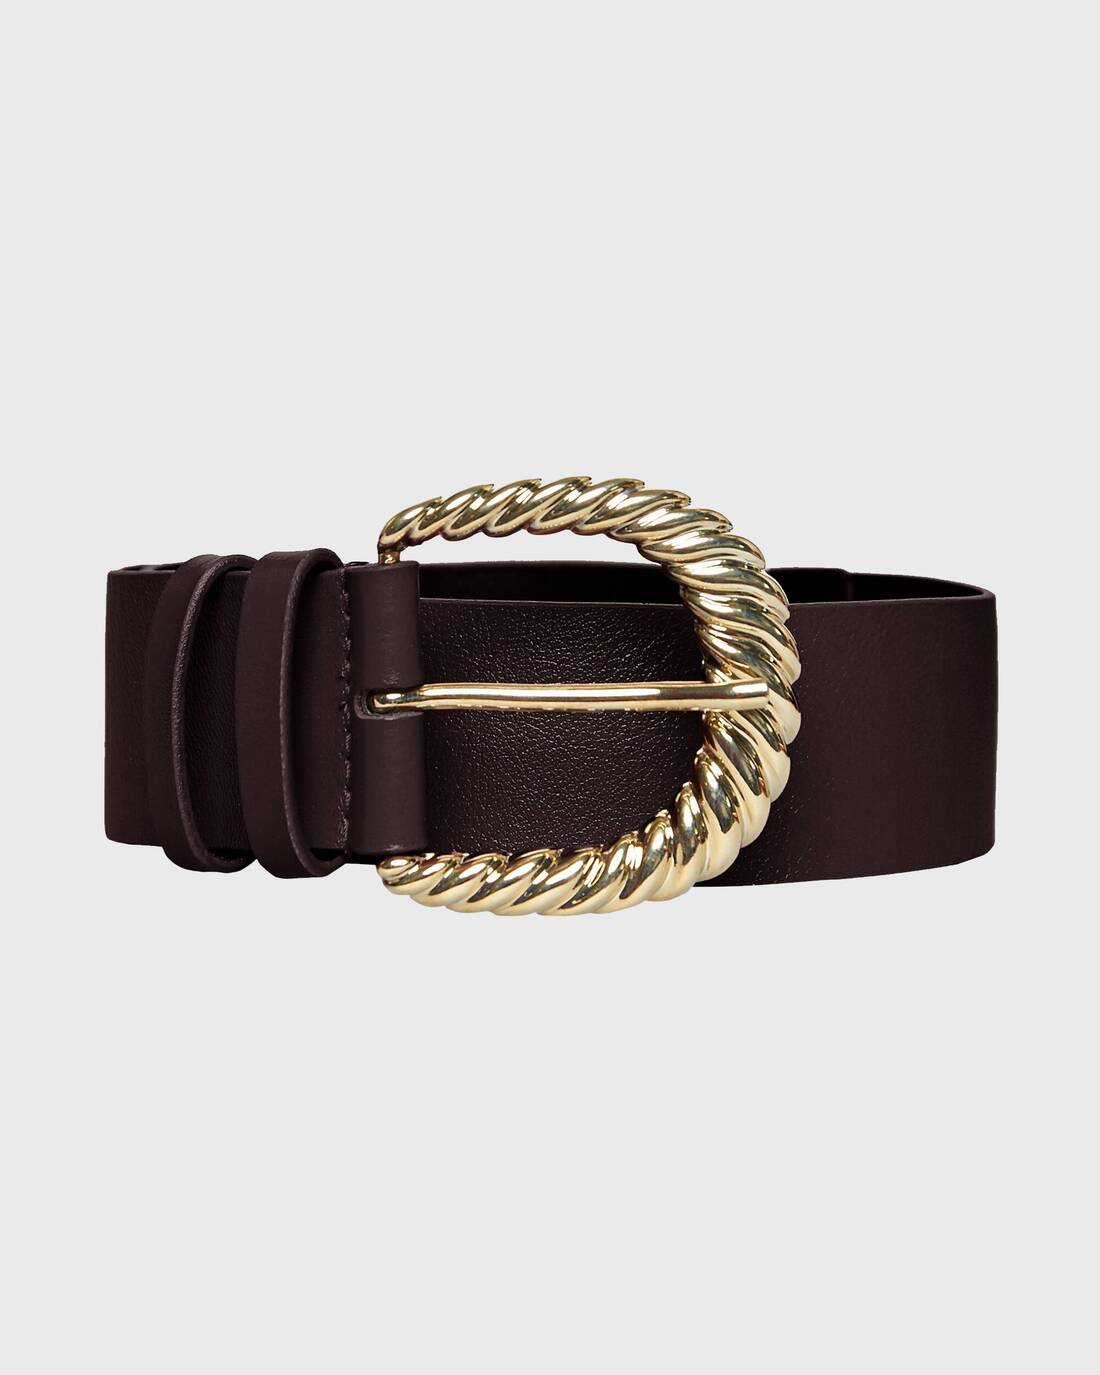 Leather belt with wide metallic buckle